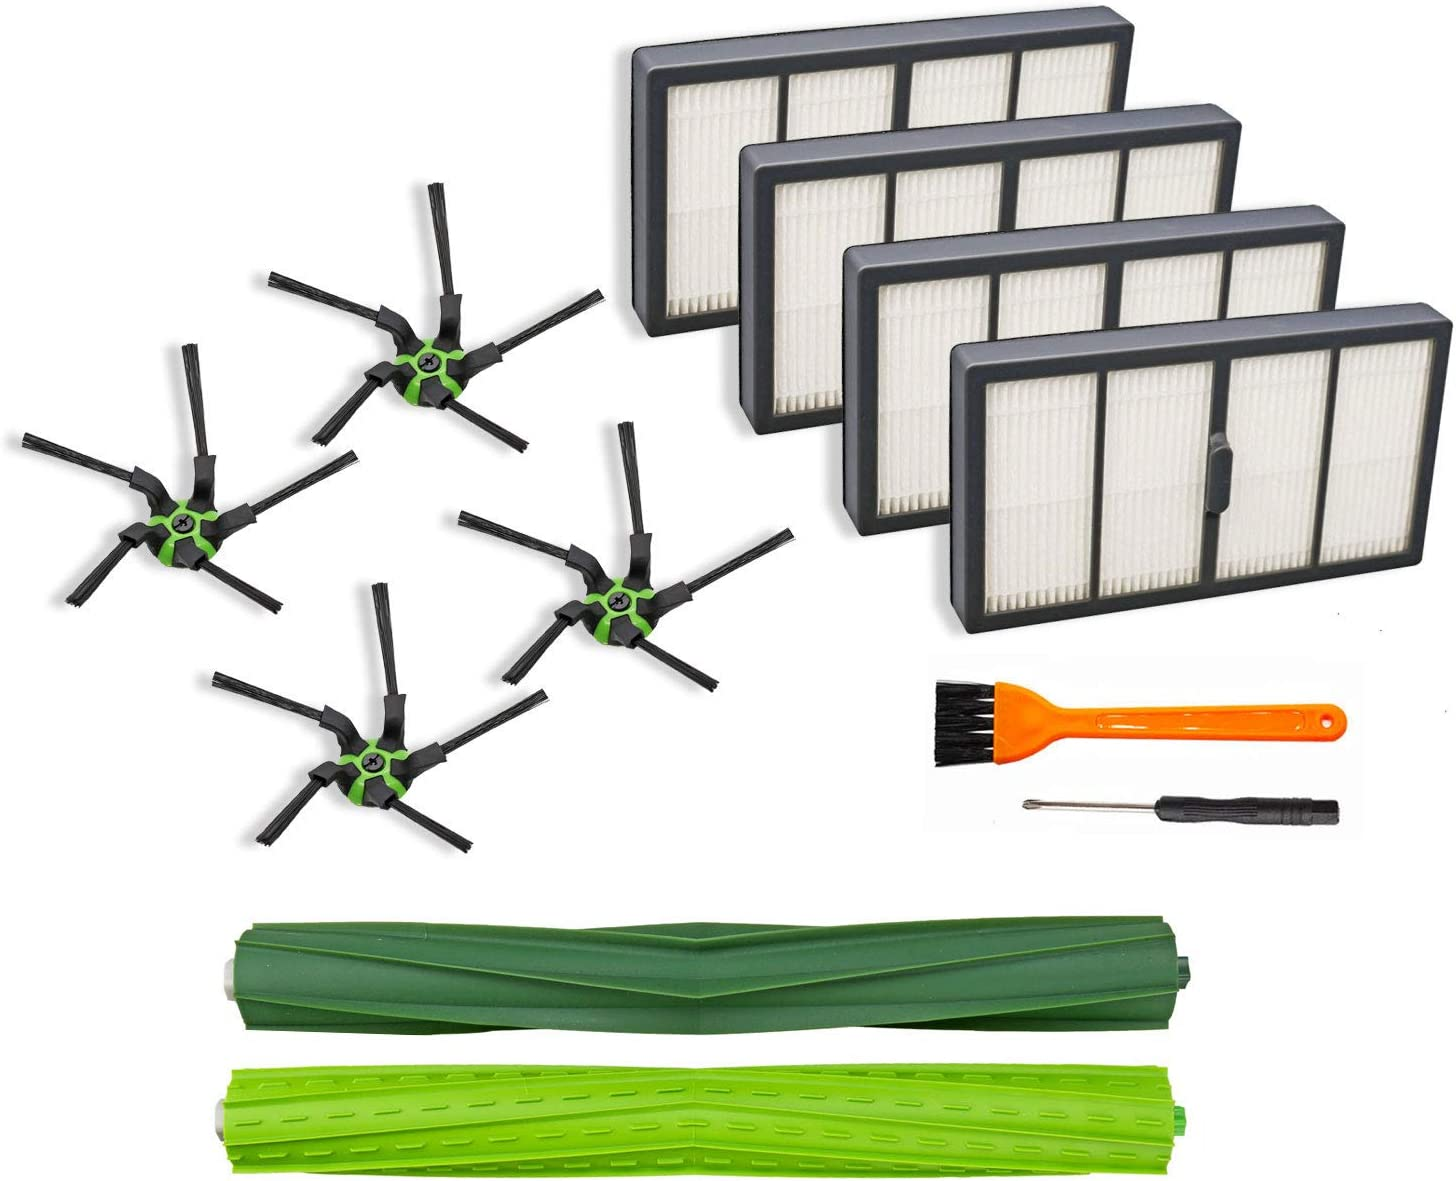 Extolife 9 Pack Replacement Parts Compatible with iRobot Roomba s9 (9150) s9+ s9 Plus (9550) s Series Robot Vacuum Cleaner (1 Set of Multi-Surface Rubber Brushes +4 Filters + 4 Side Brushes)